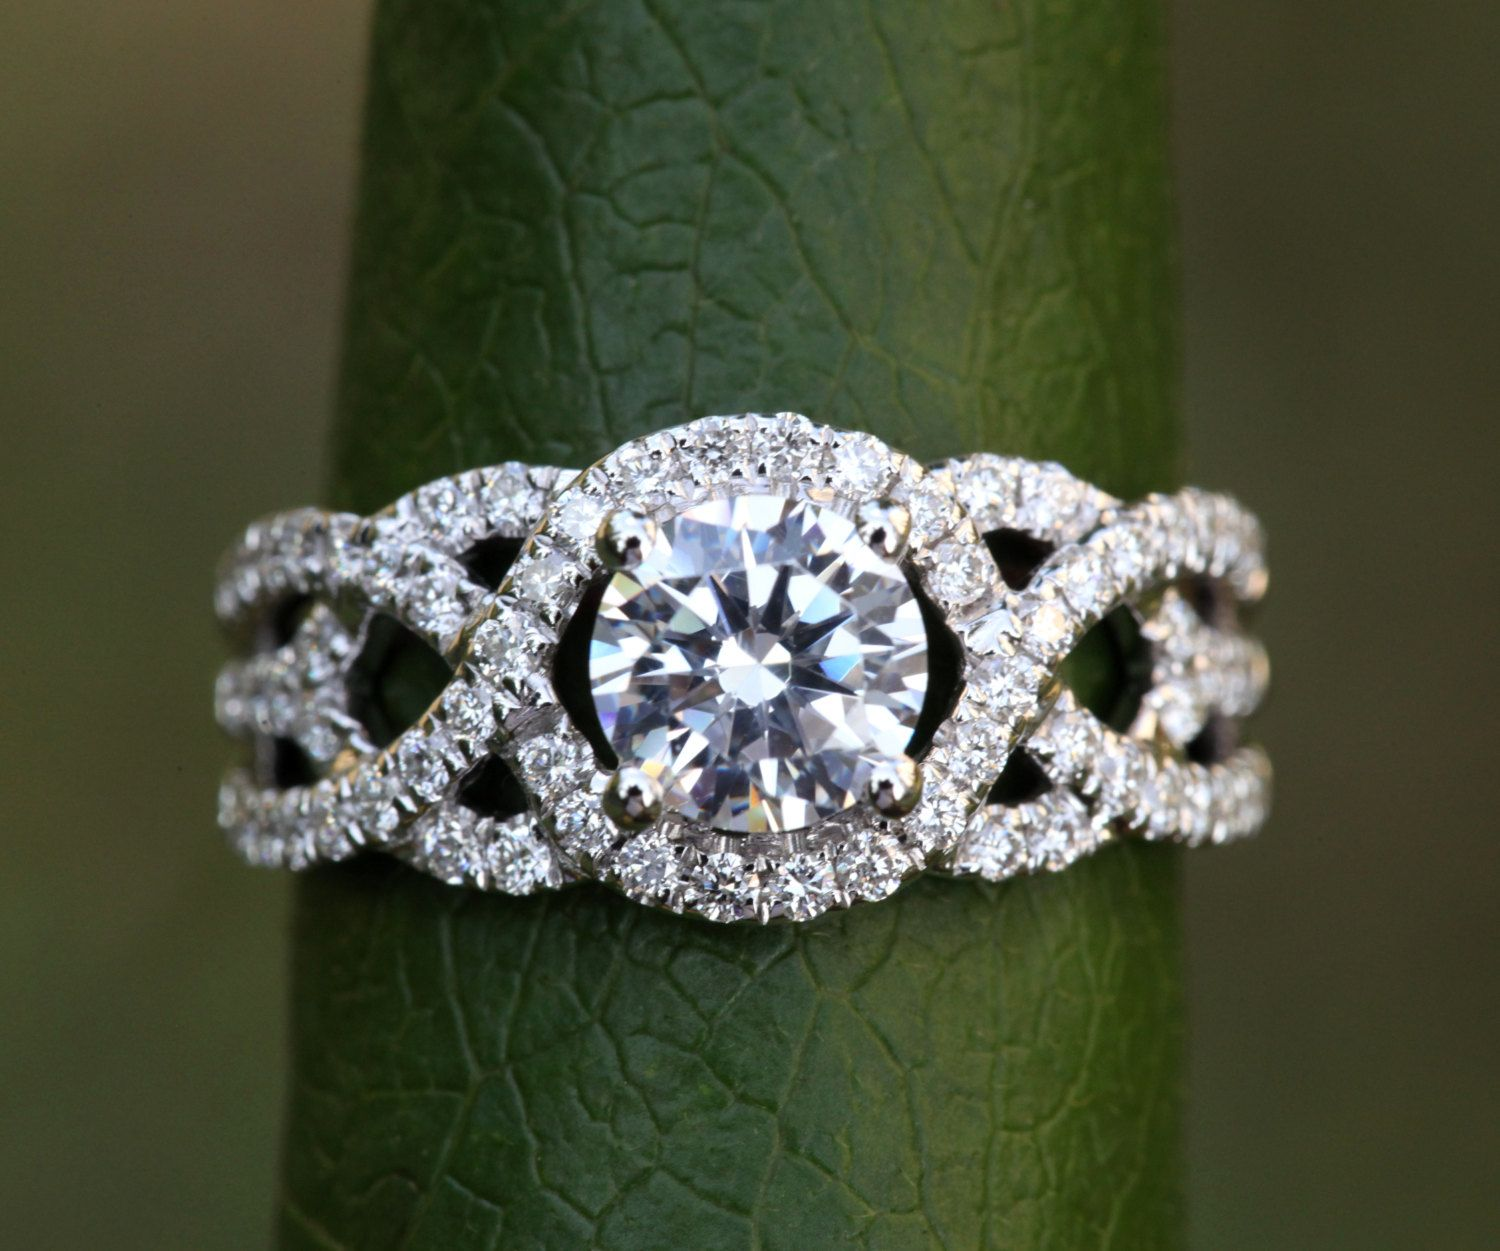 twist of fate diamond engagement ring settingbeautifulpetra